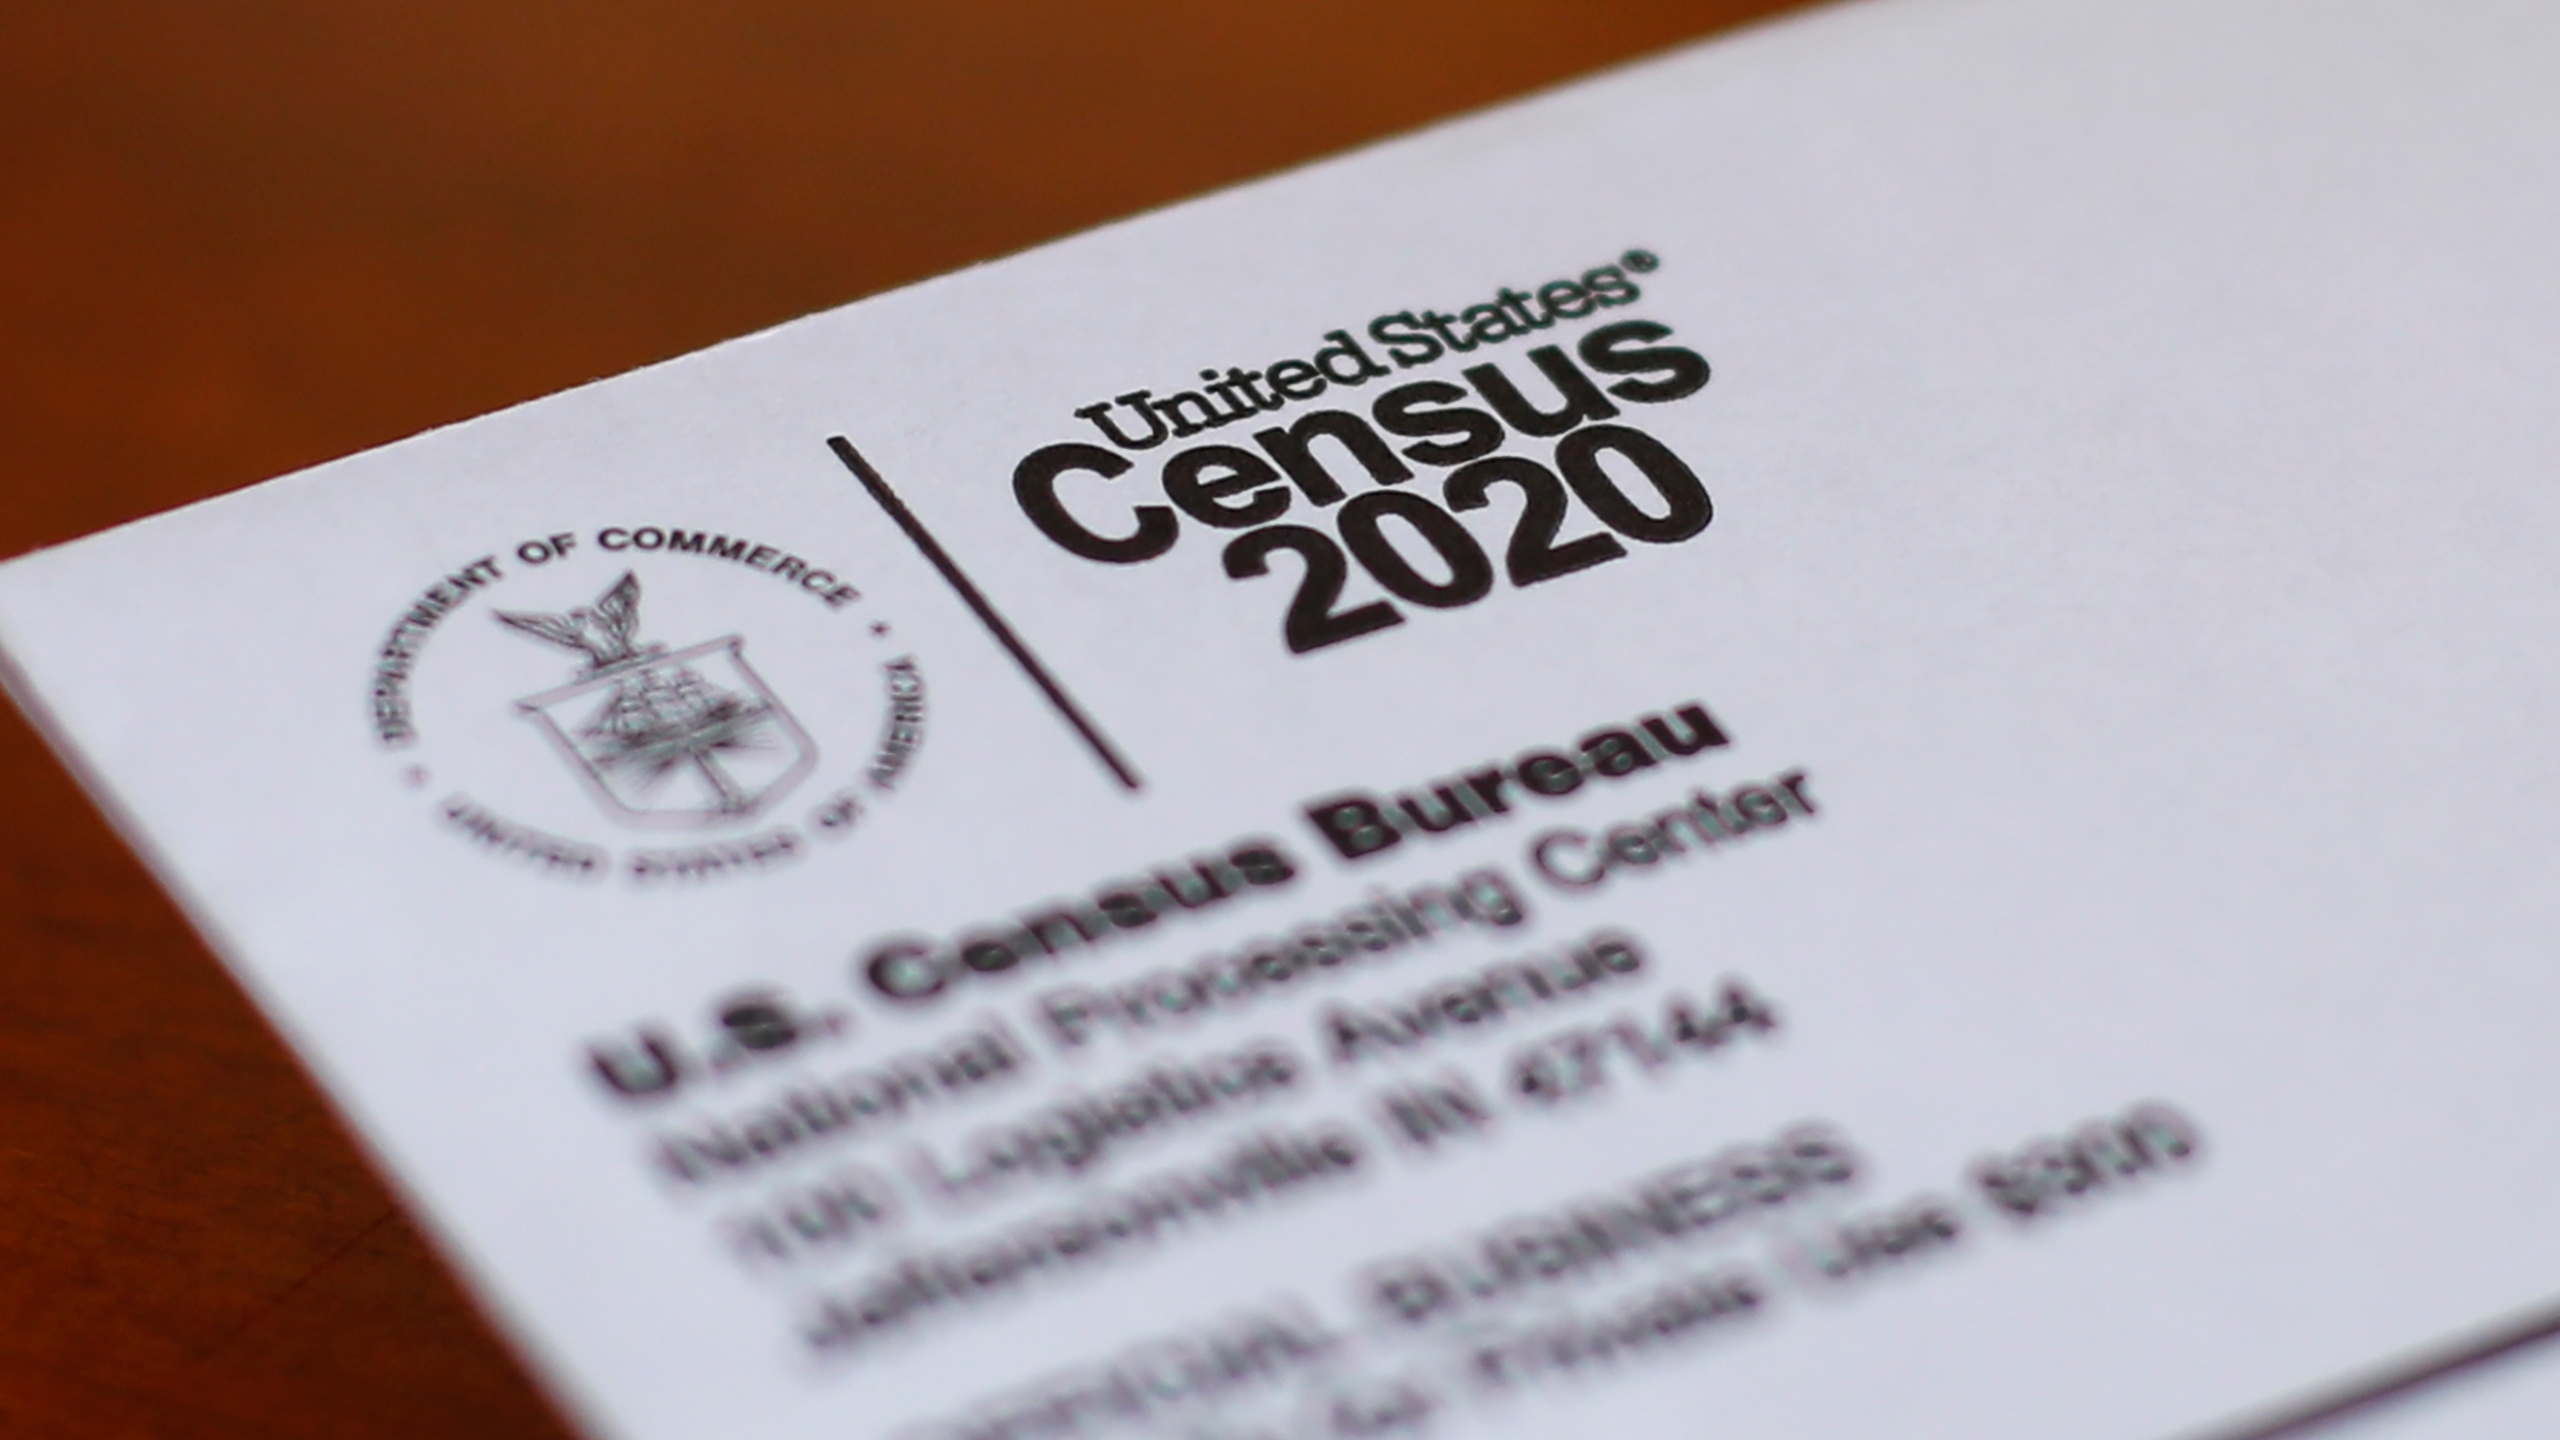 Mayor Madden encourages Troy families to complete 2020 Census